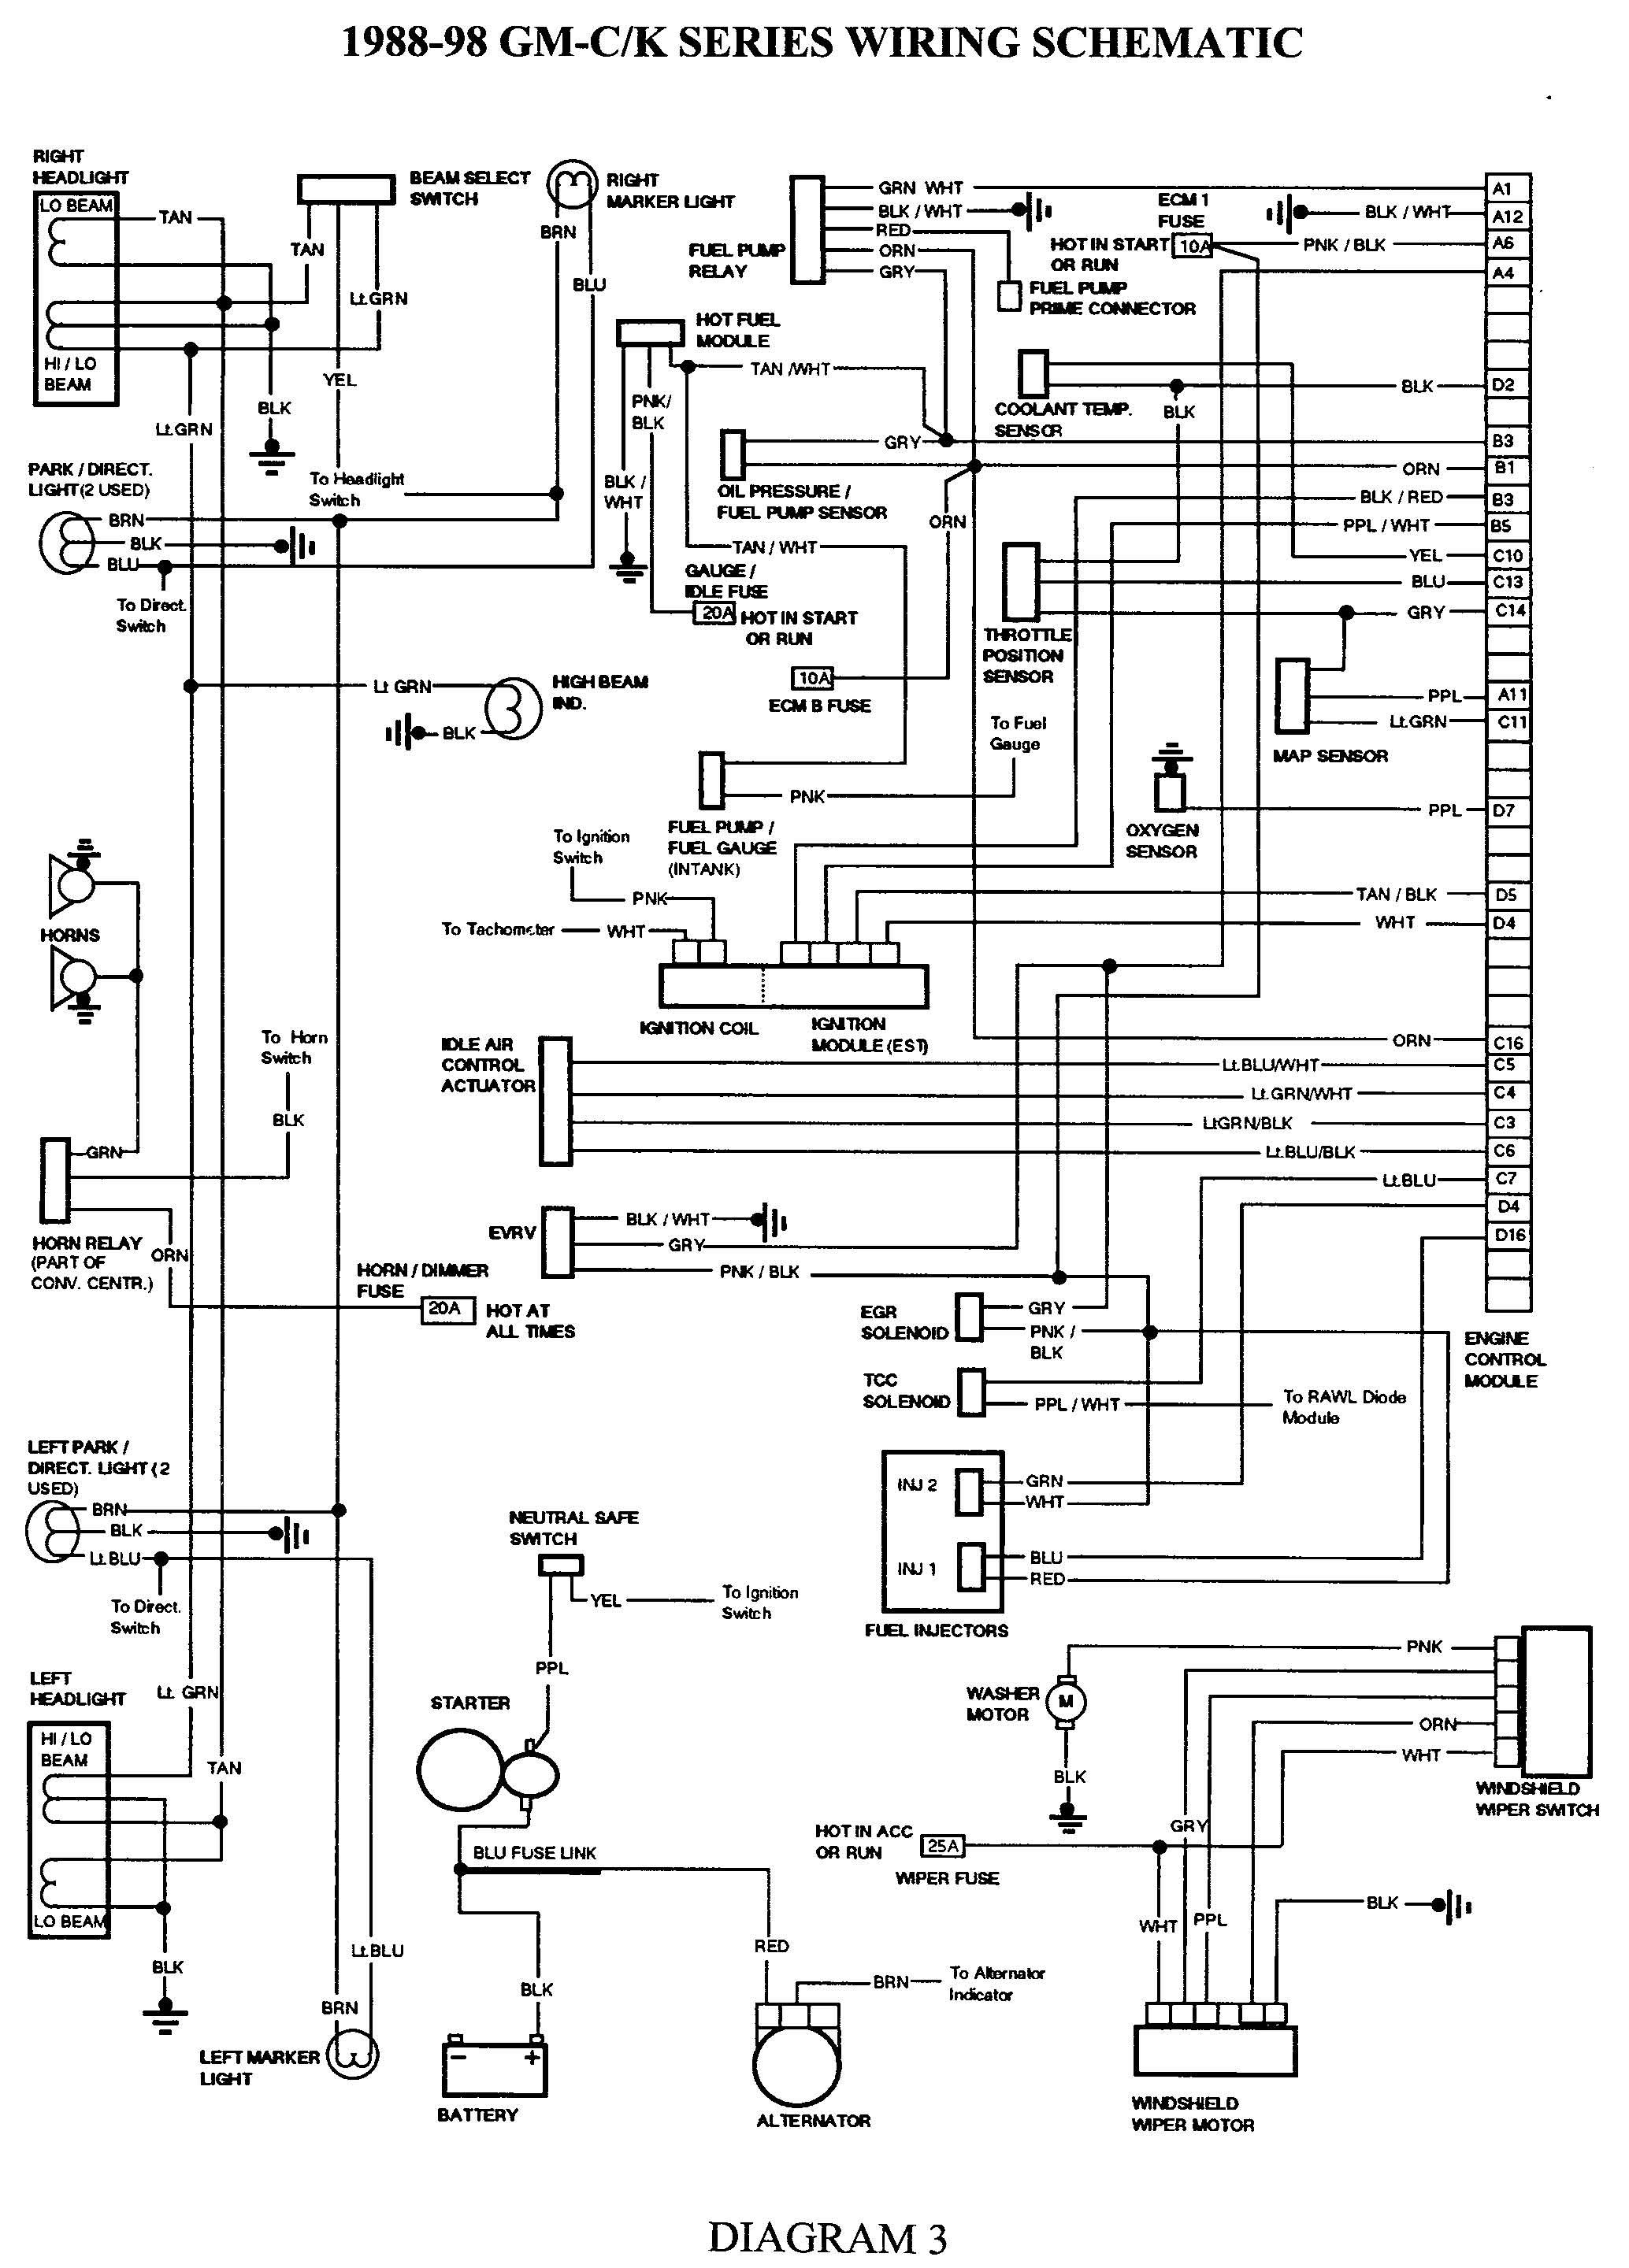 b2f2e5dbdc07dada83ef514f6d4ce3d4 electric wiring diagram instrument panel auto repair Basic Electrical Wiring Diagrams at crackthecode.co